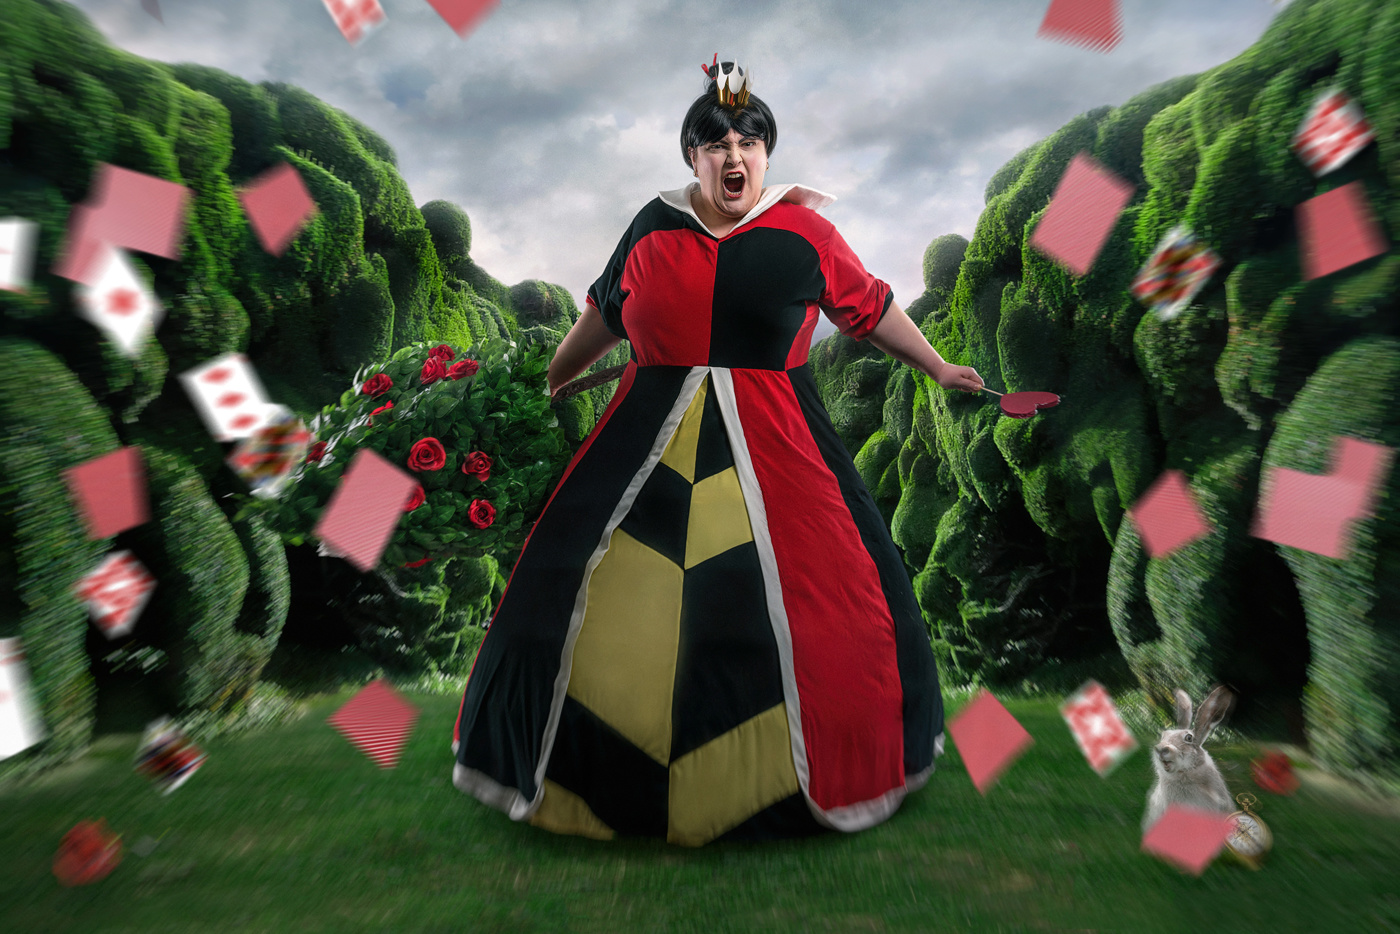 Queen of Hearts Enraged by lorenzo emme